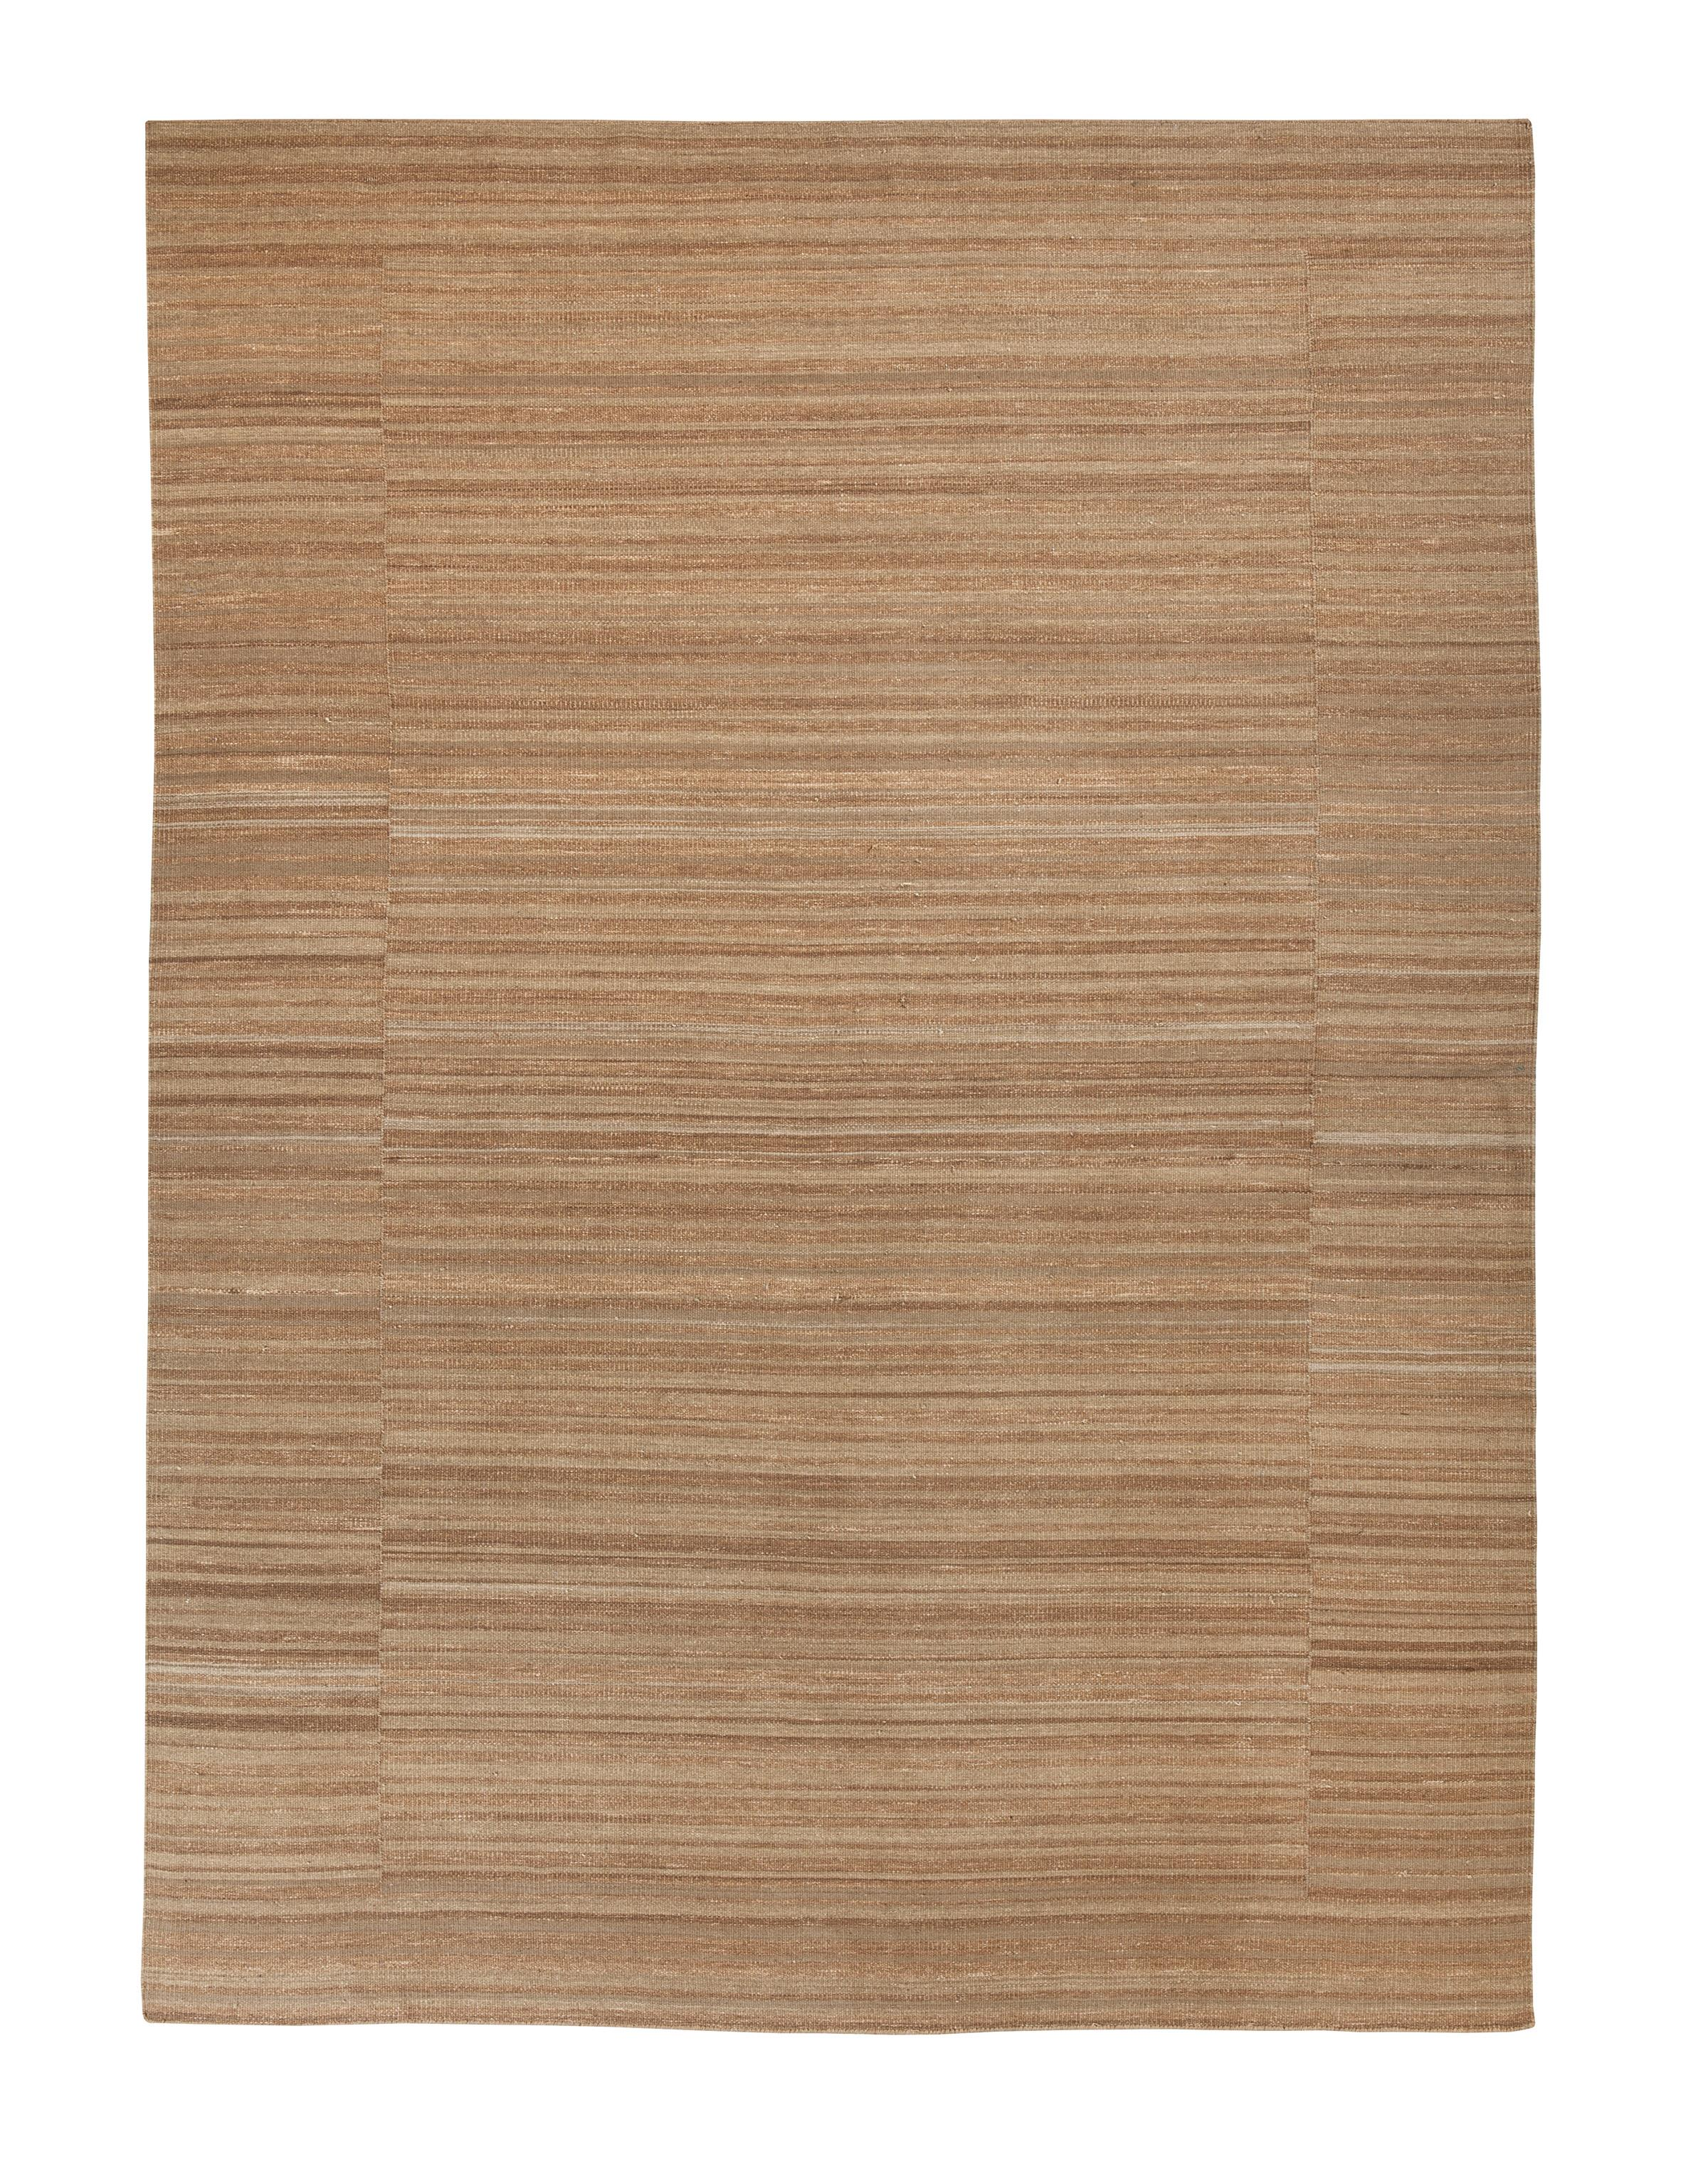 Signature Design by Ashley Transitional Area Rugs Flatweave - Tan Large Rug - Item Number: R401591